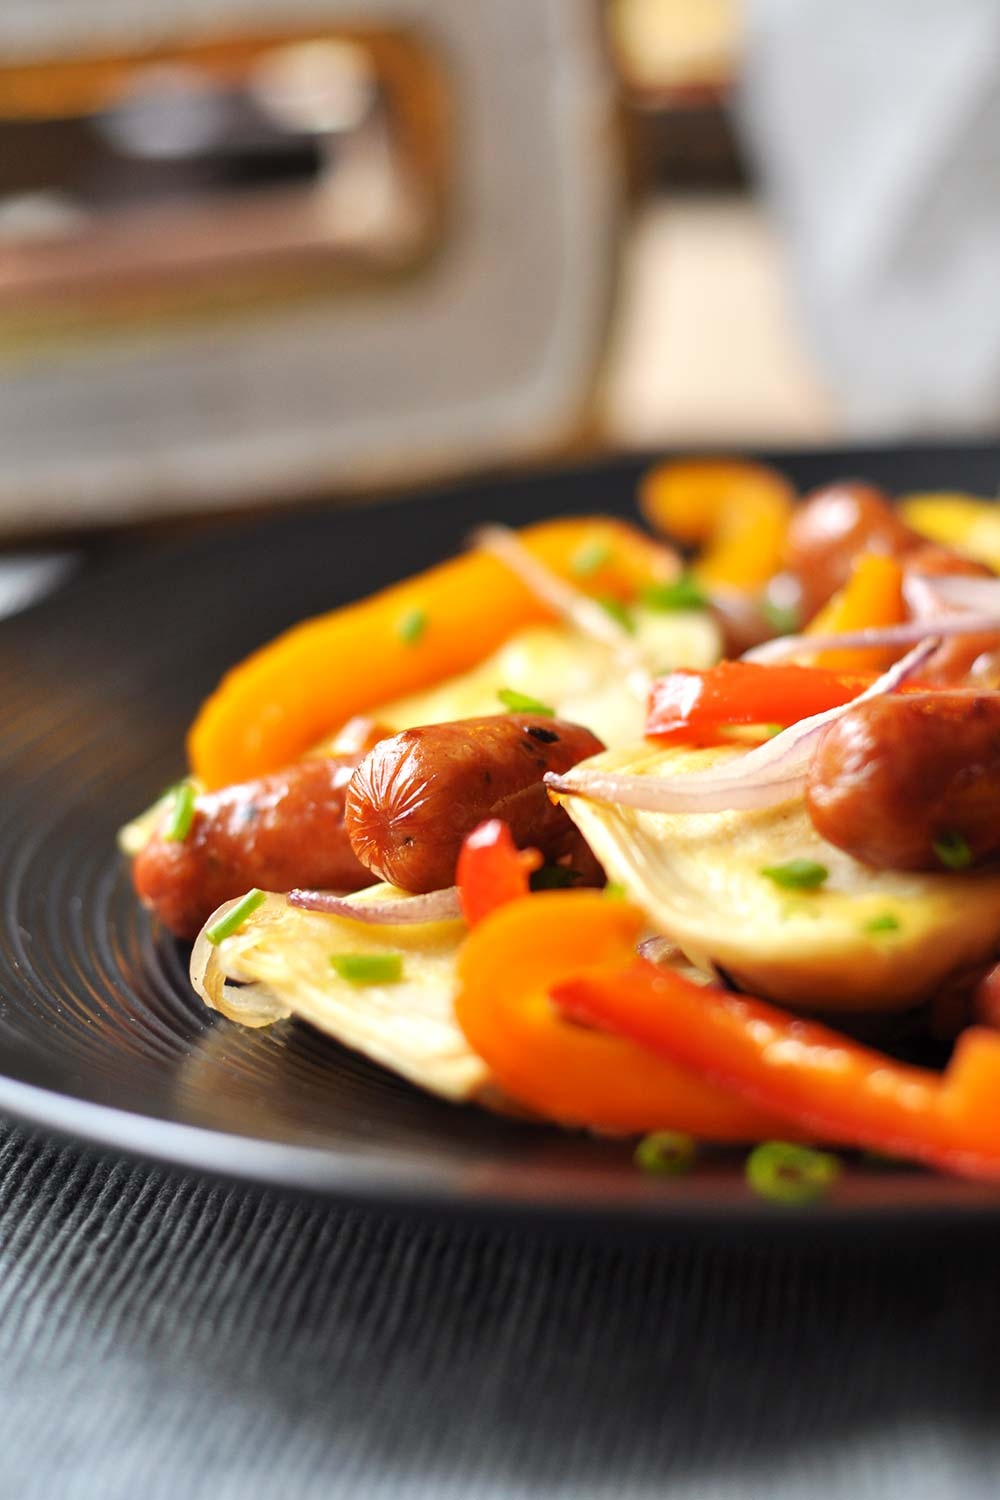 Plated Pierogies and Kielbasa with Peppers and Onions